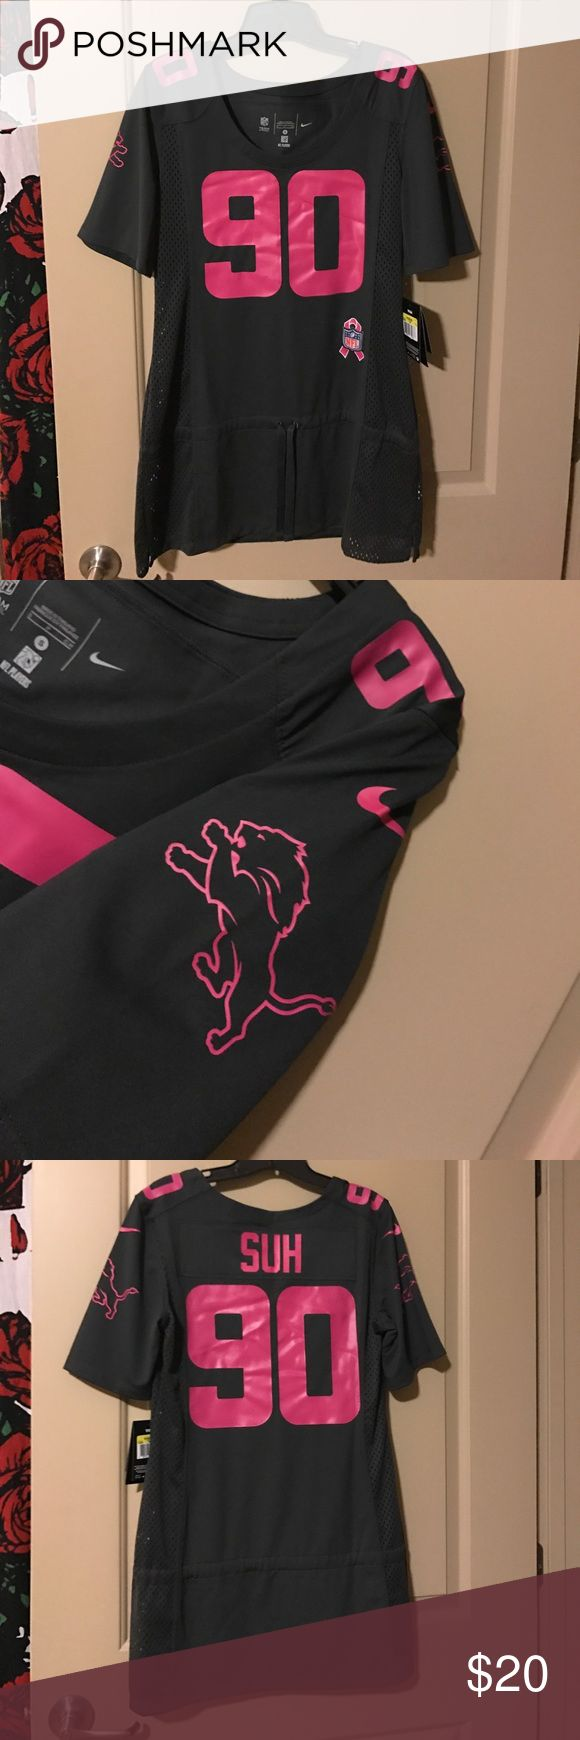 NFL women's breast cancer awareness jersey NFL jersey Lions #90 Suh- breast cancer awareness edition Nike Other